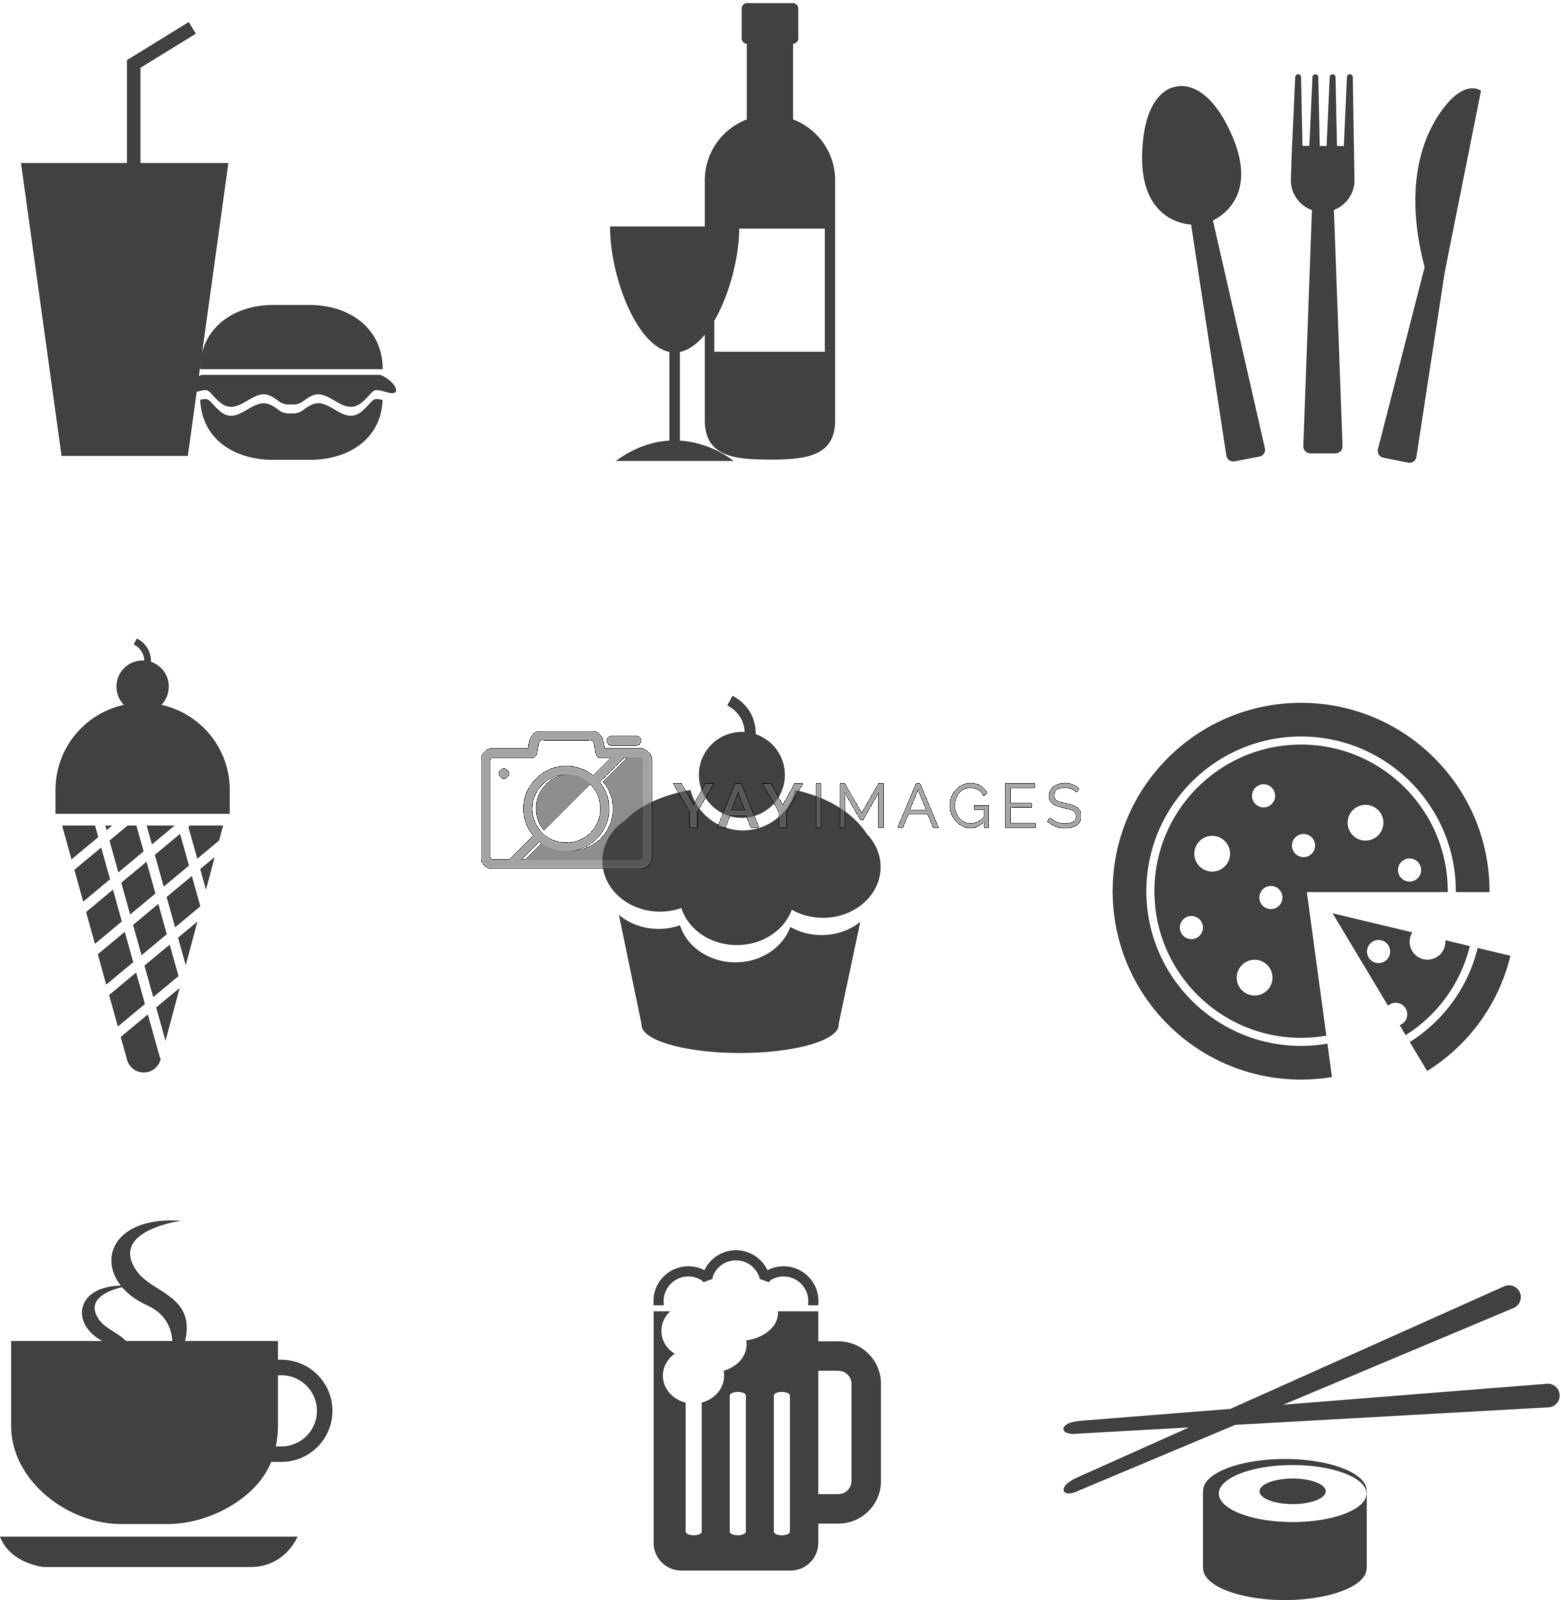 food and drink icons by kaisorn